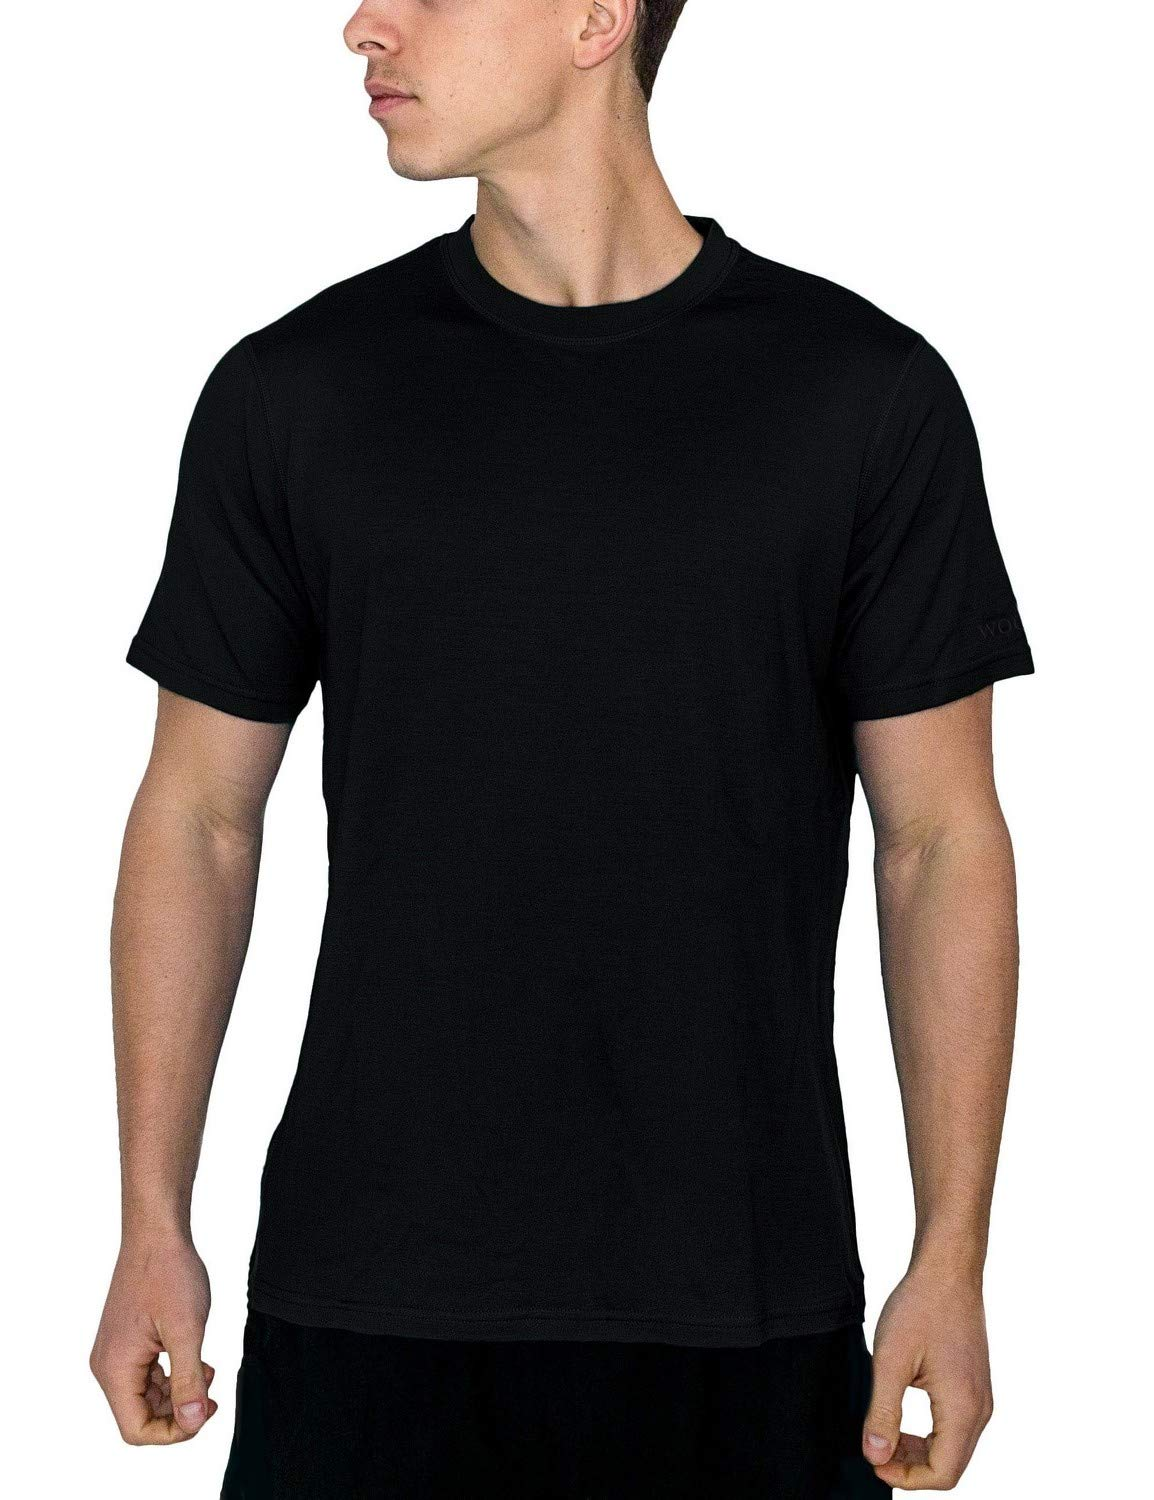 Woolx Men's Endurance Lightweight Extremely Durable Merino Wool Tee Wicks Away Moisture, Black, Medium